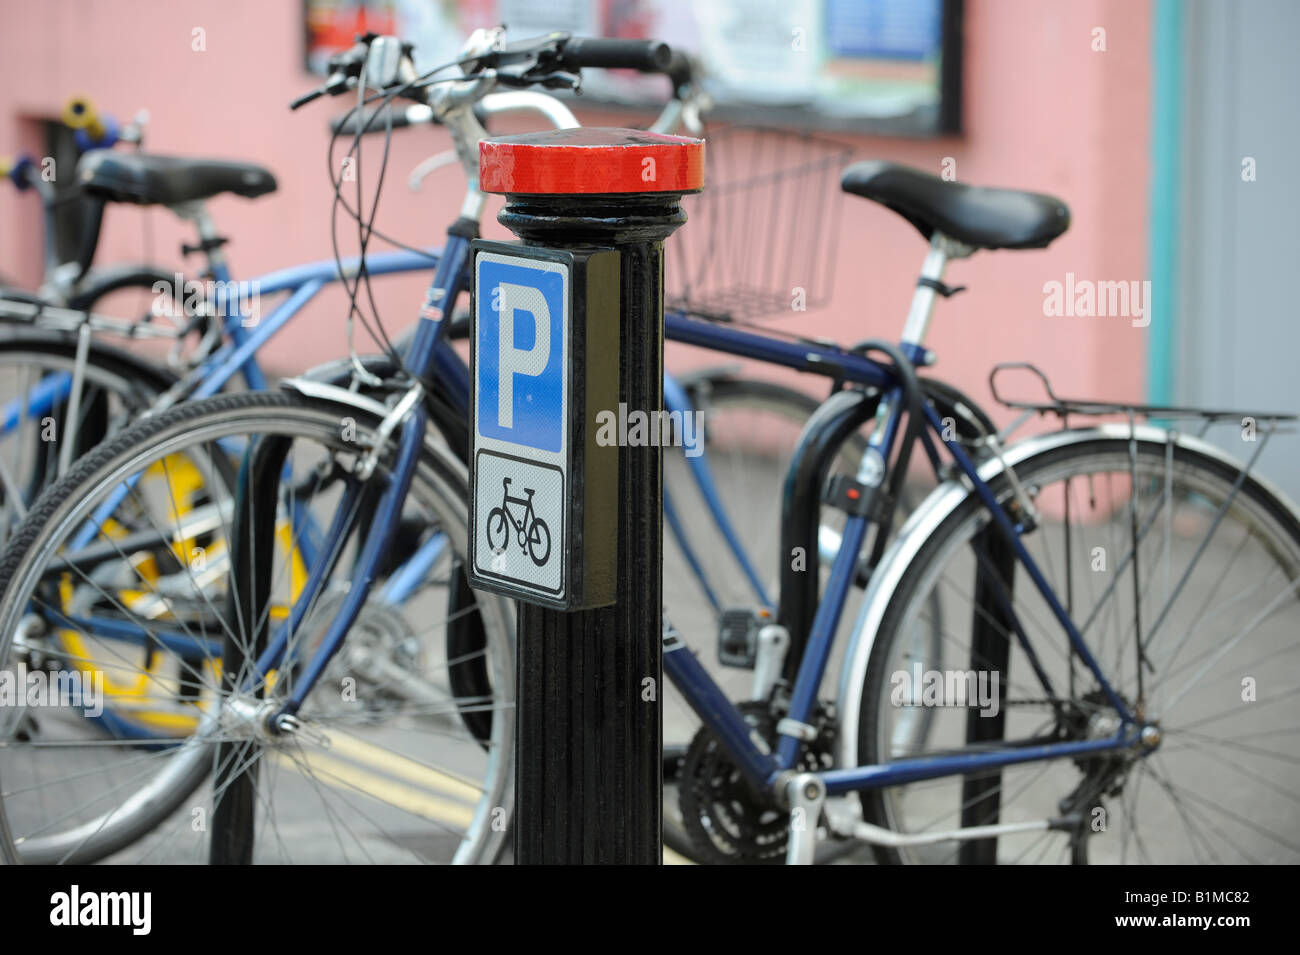 City of Brighton introduce parking bays for bicycles. Picture by Jim Holden. - Stock Image